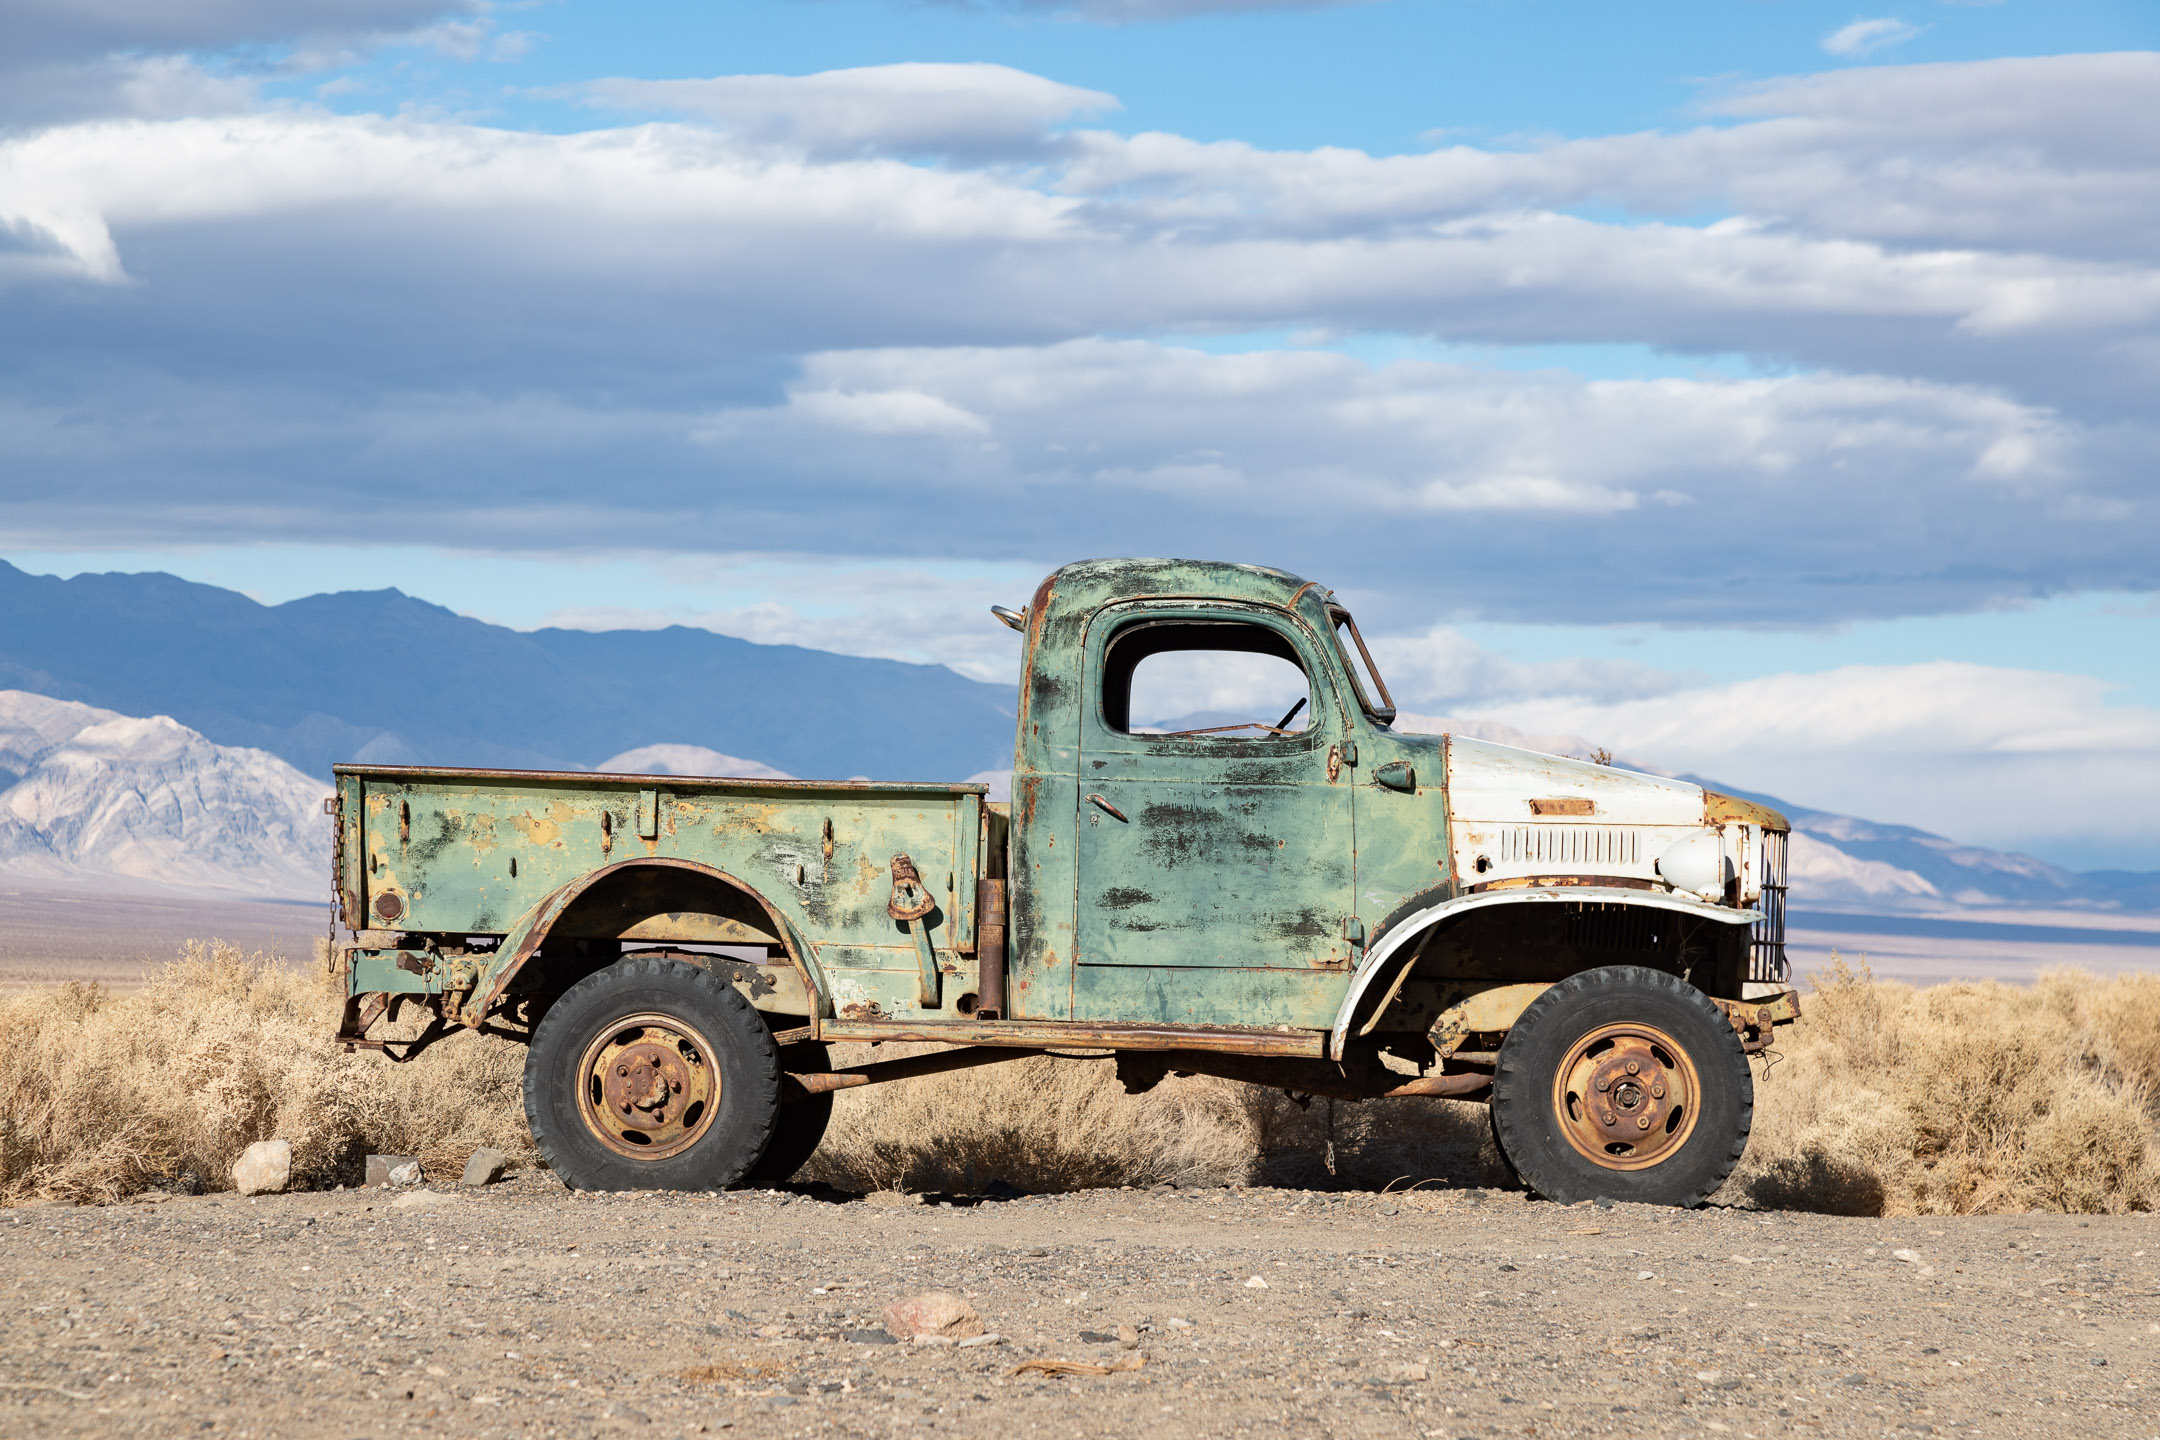 OldTruckVersion2DeathValley12.27.18copy